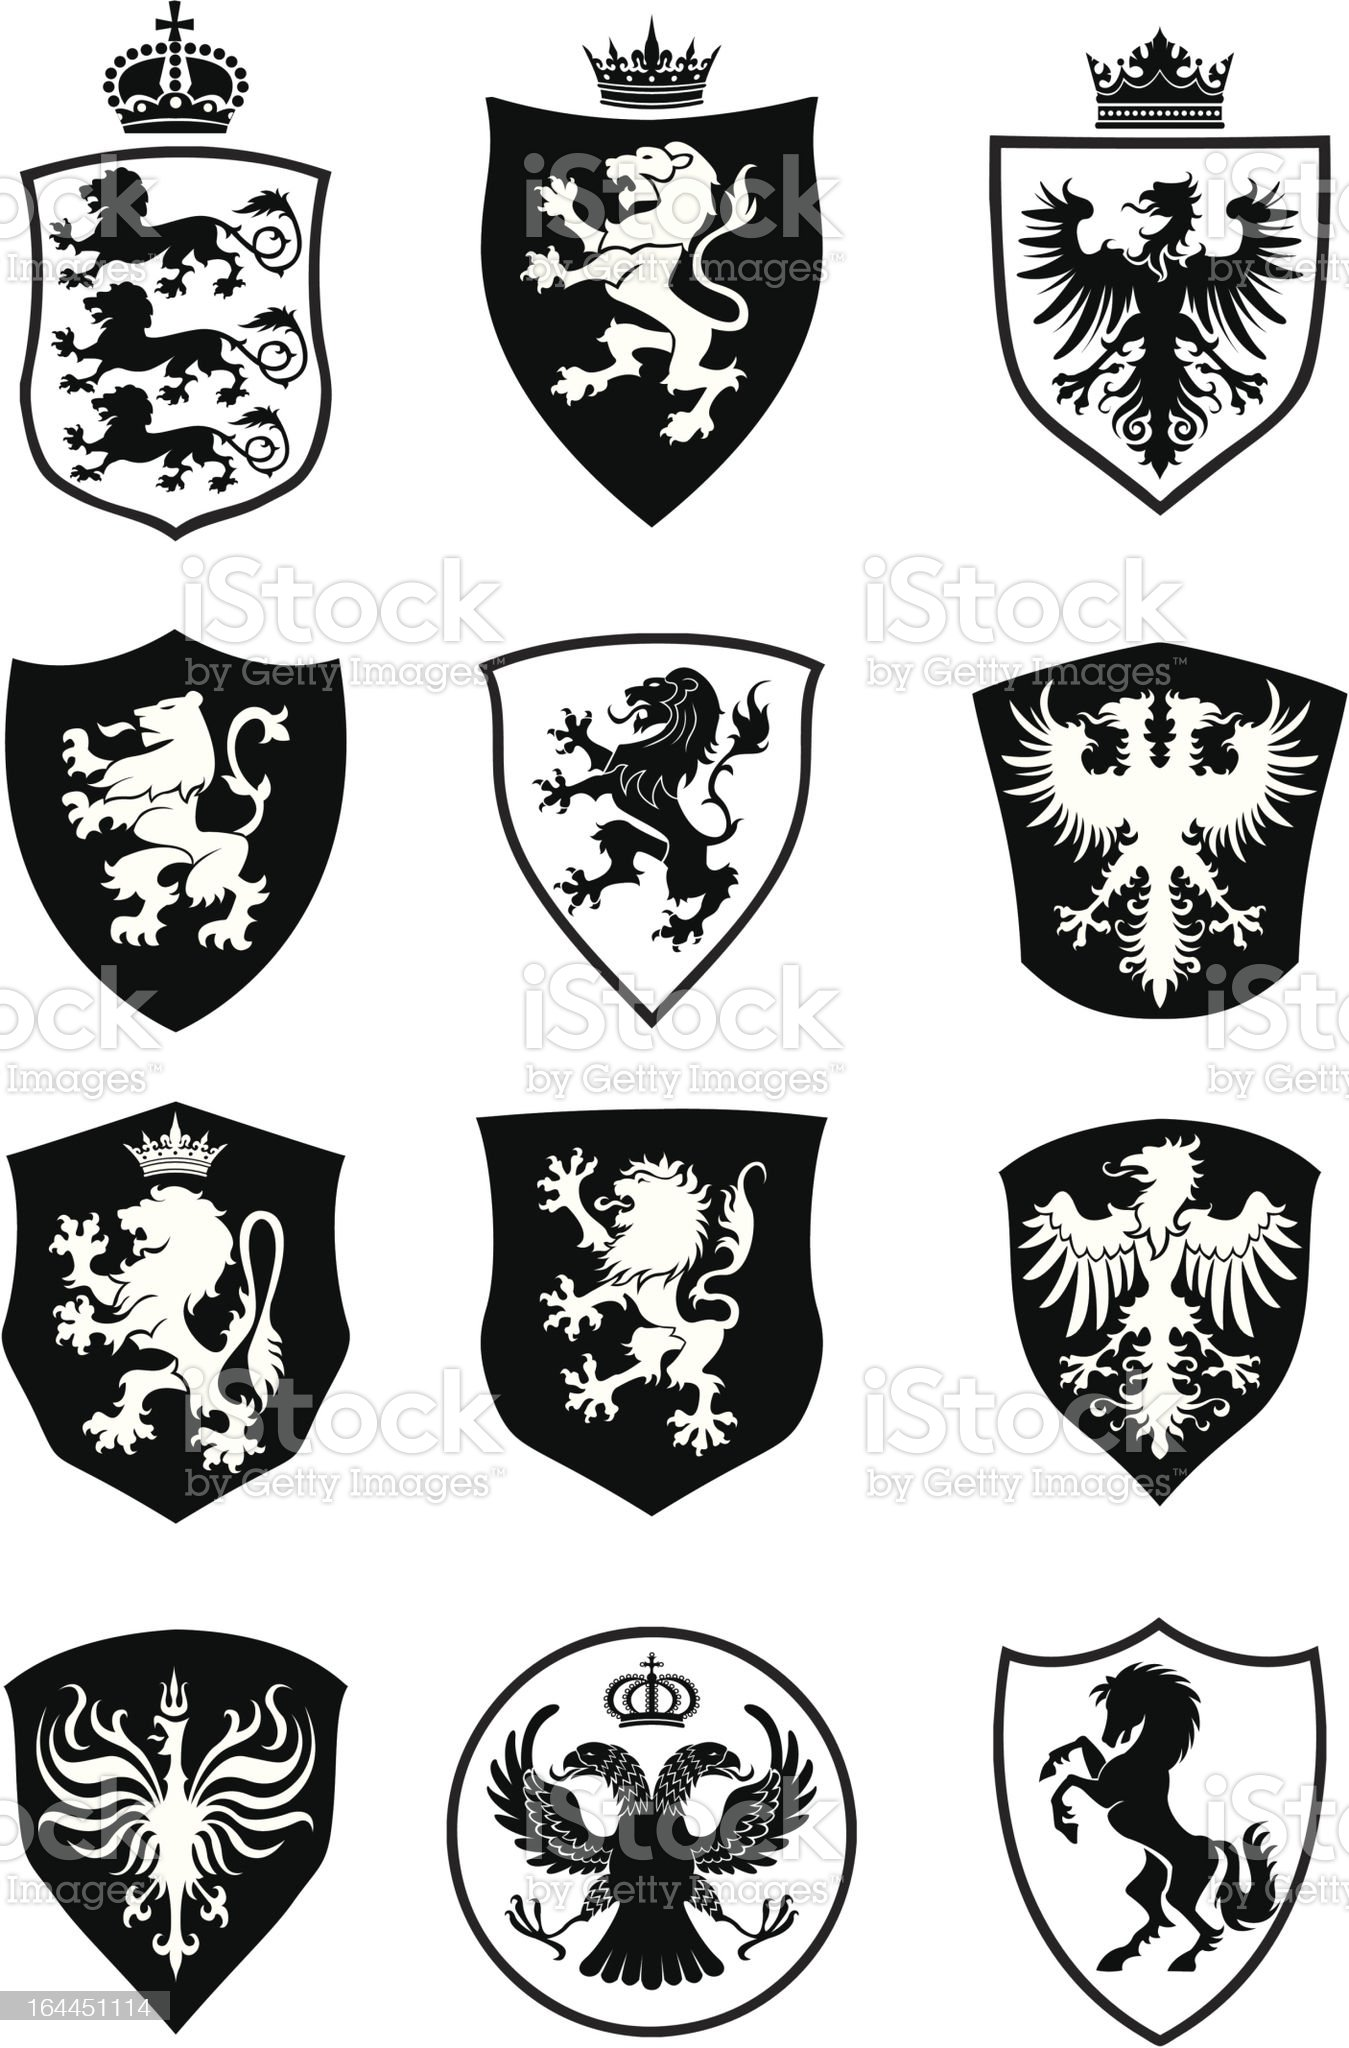 Set of shield heraldry royalty-free stock vector art